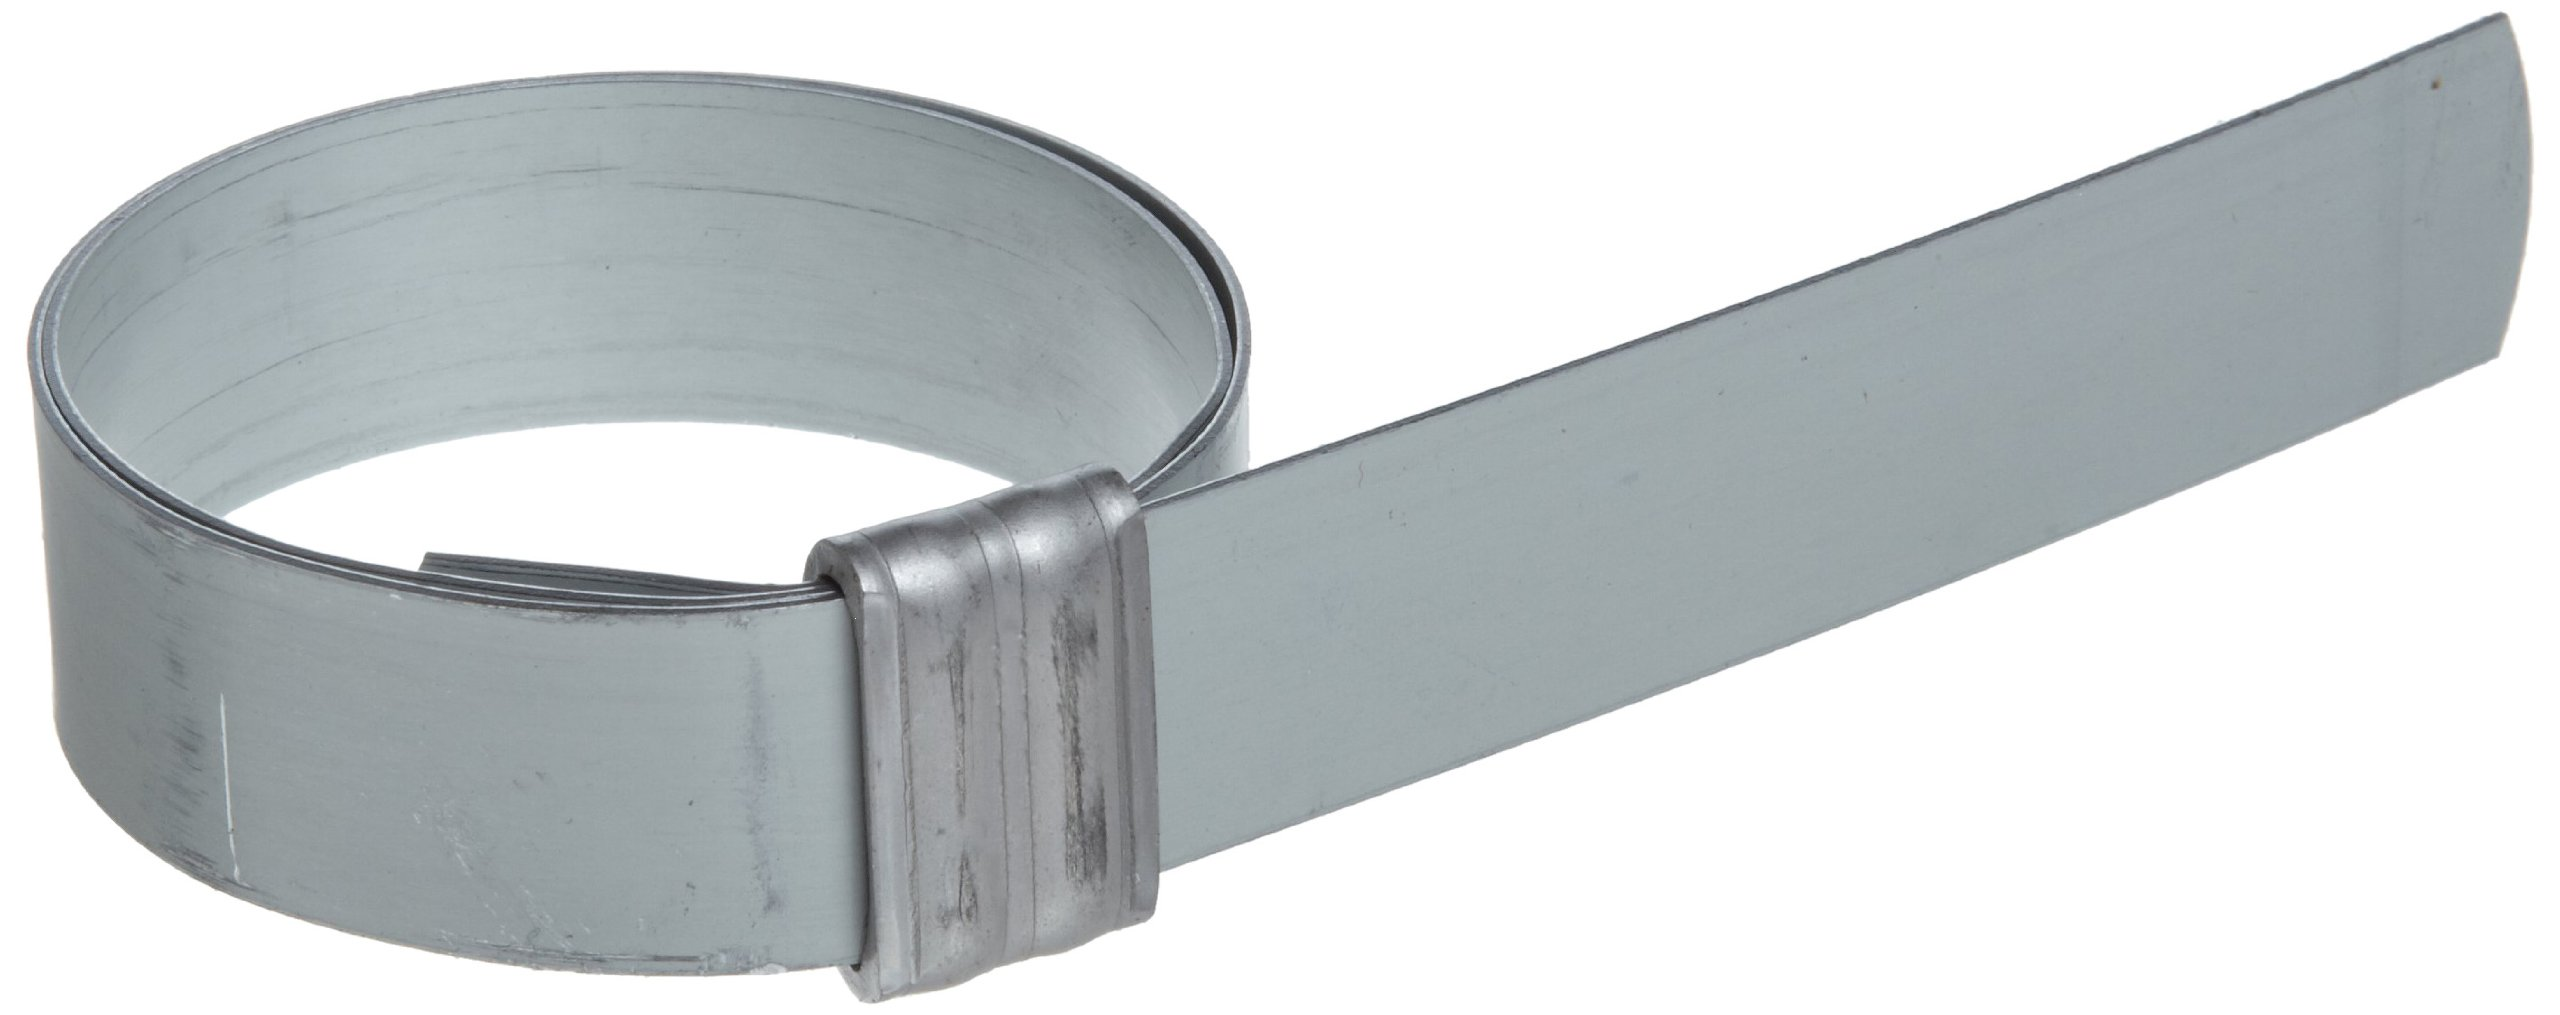 BAND-IT JS3279 Junior 3/4'' Wide x 0.030'' Thick, 2'' Diameter, Galvanized Carbon Steel Smooth I.D. Clamp (100 Per Box)